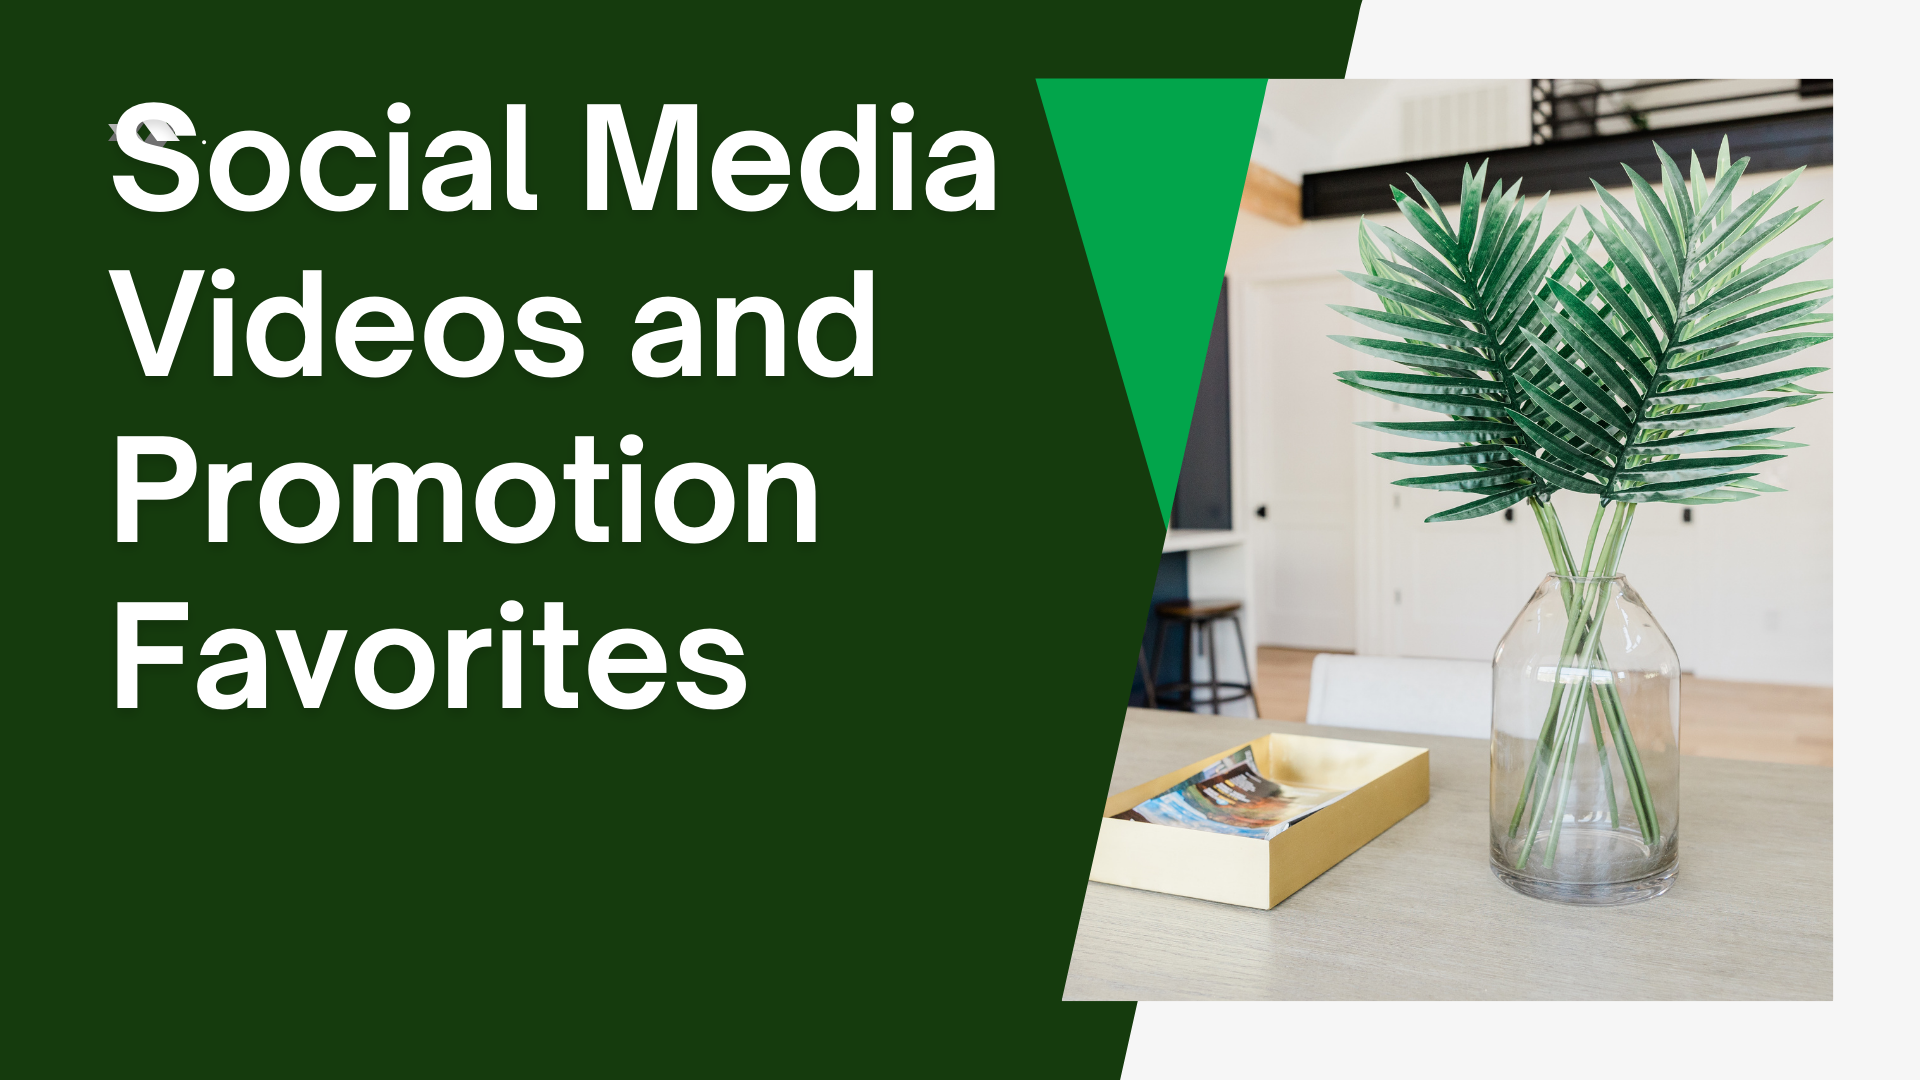 Social Media Videos and Promotion Favorites&rsquo